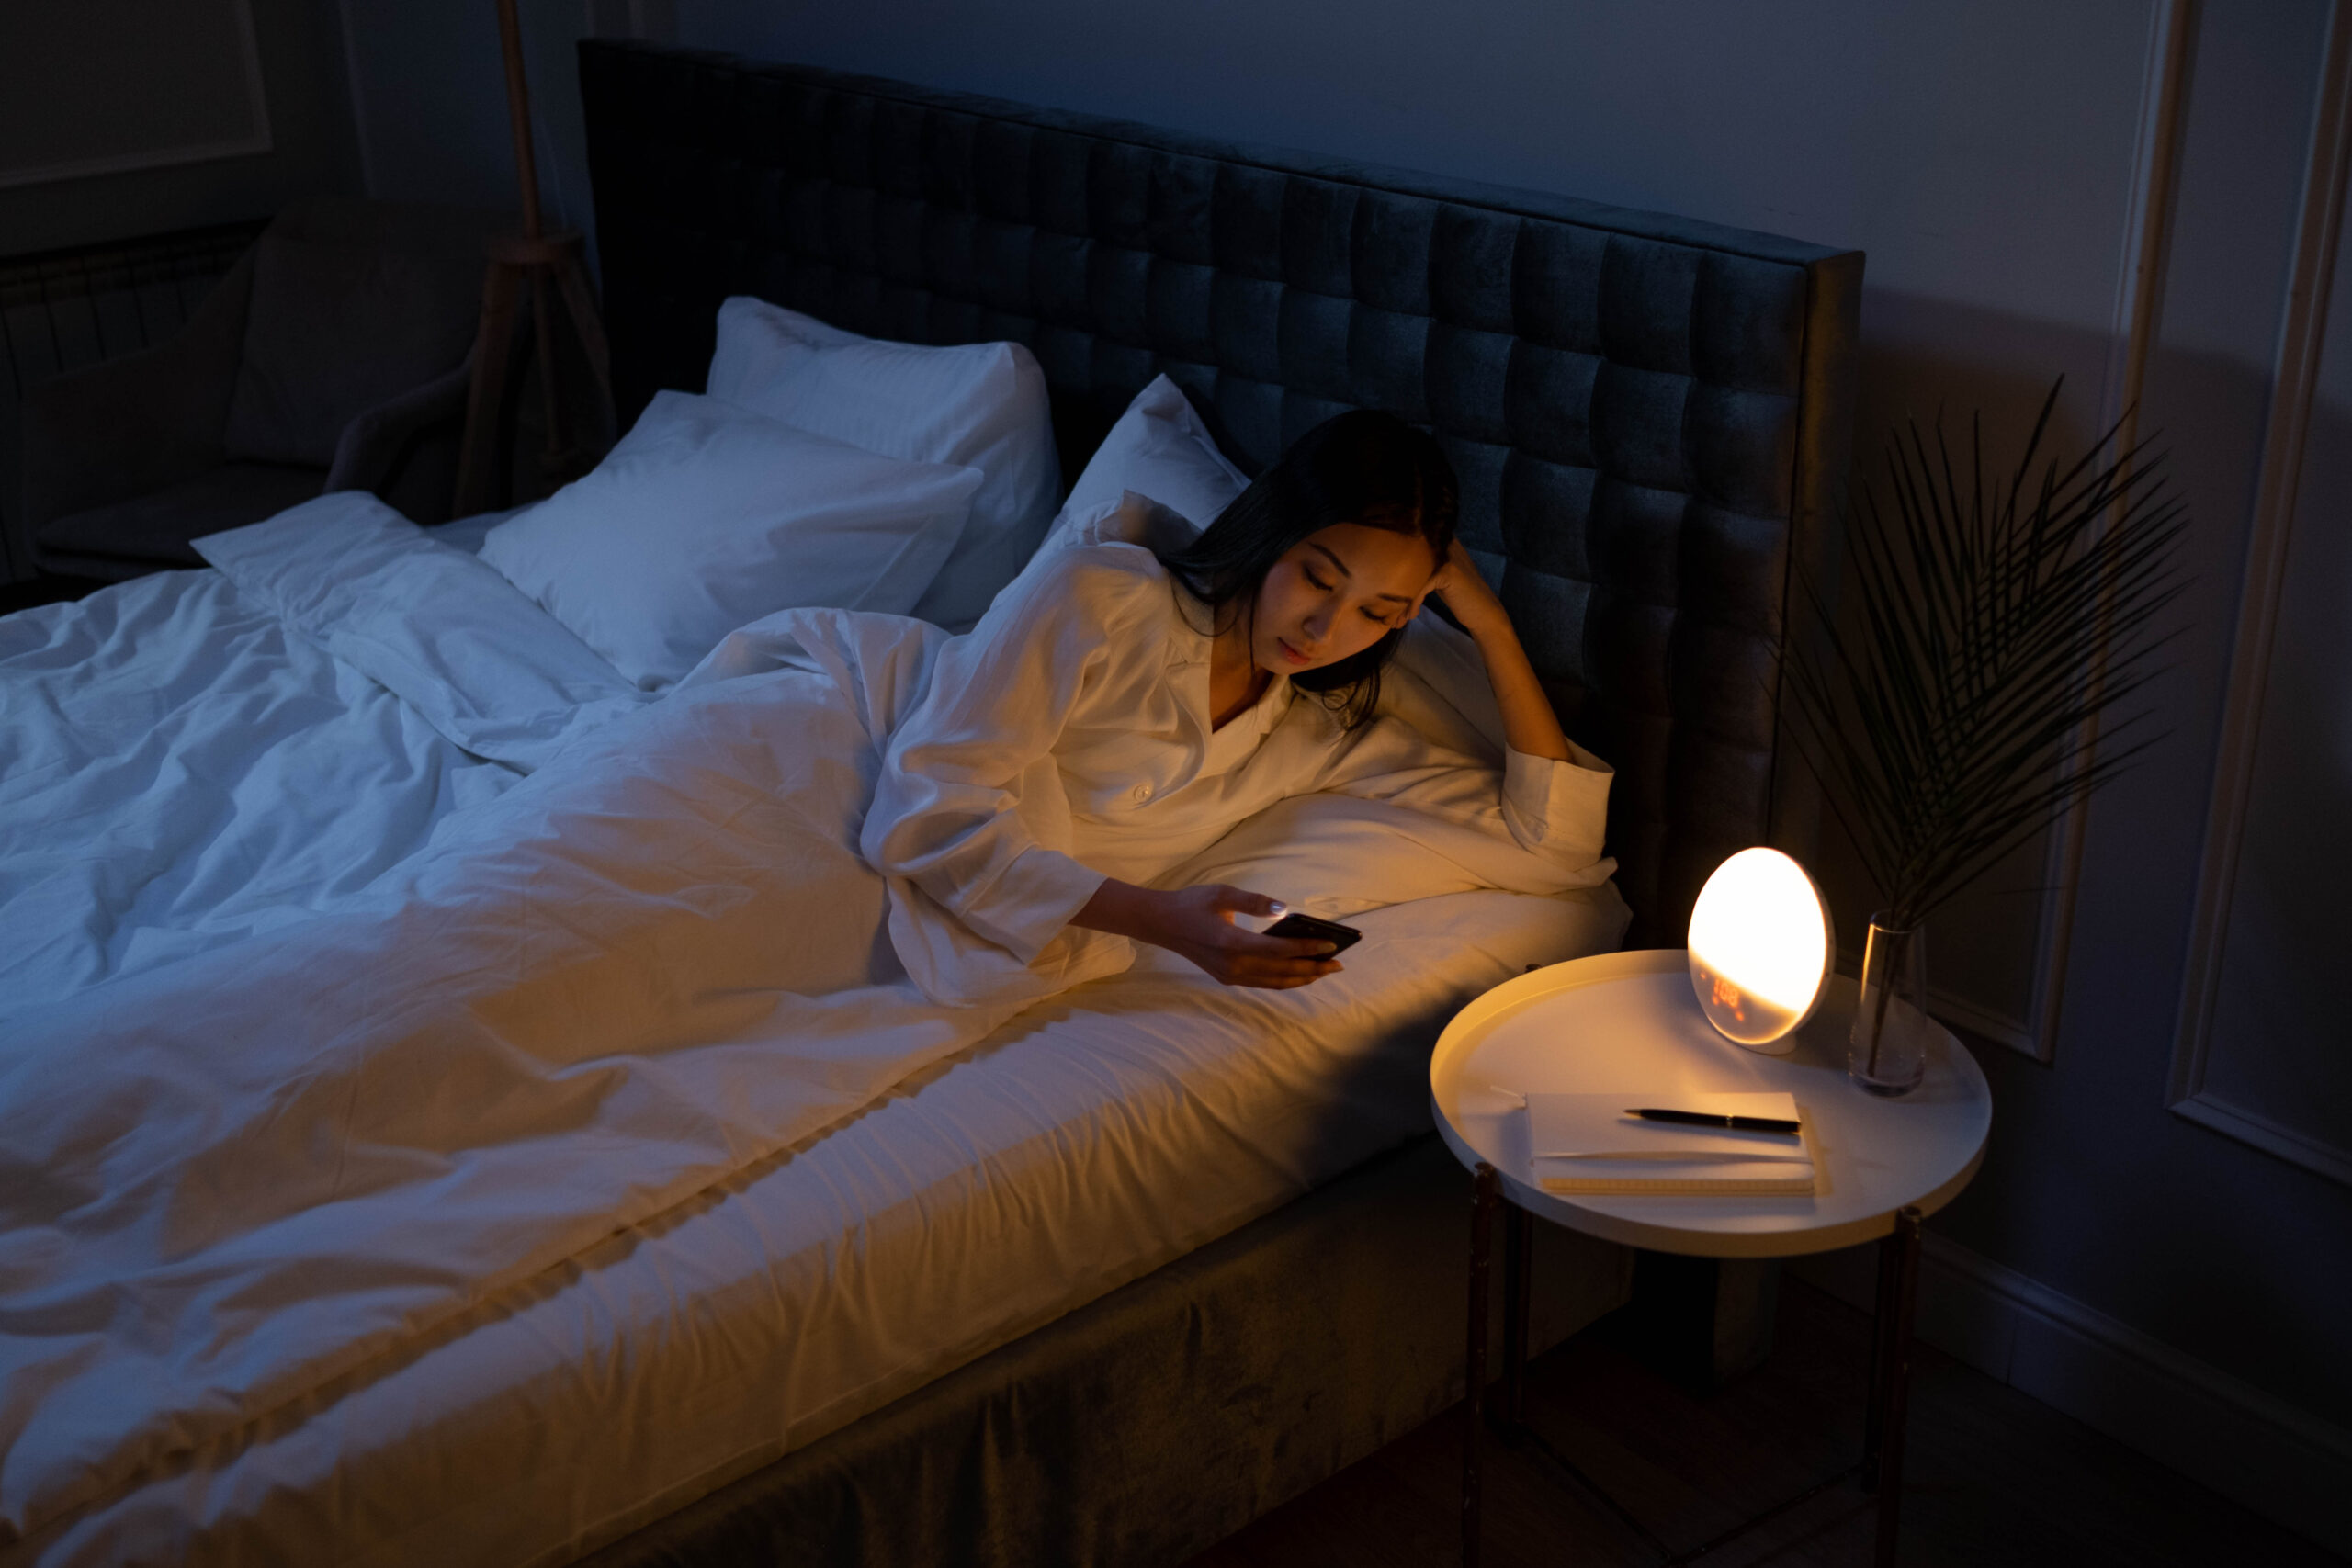 How lack of sleep affects your body